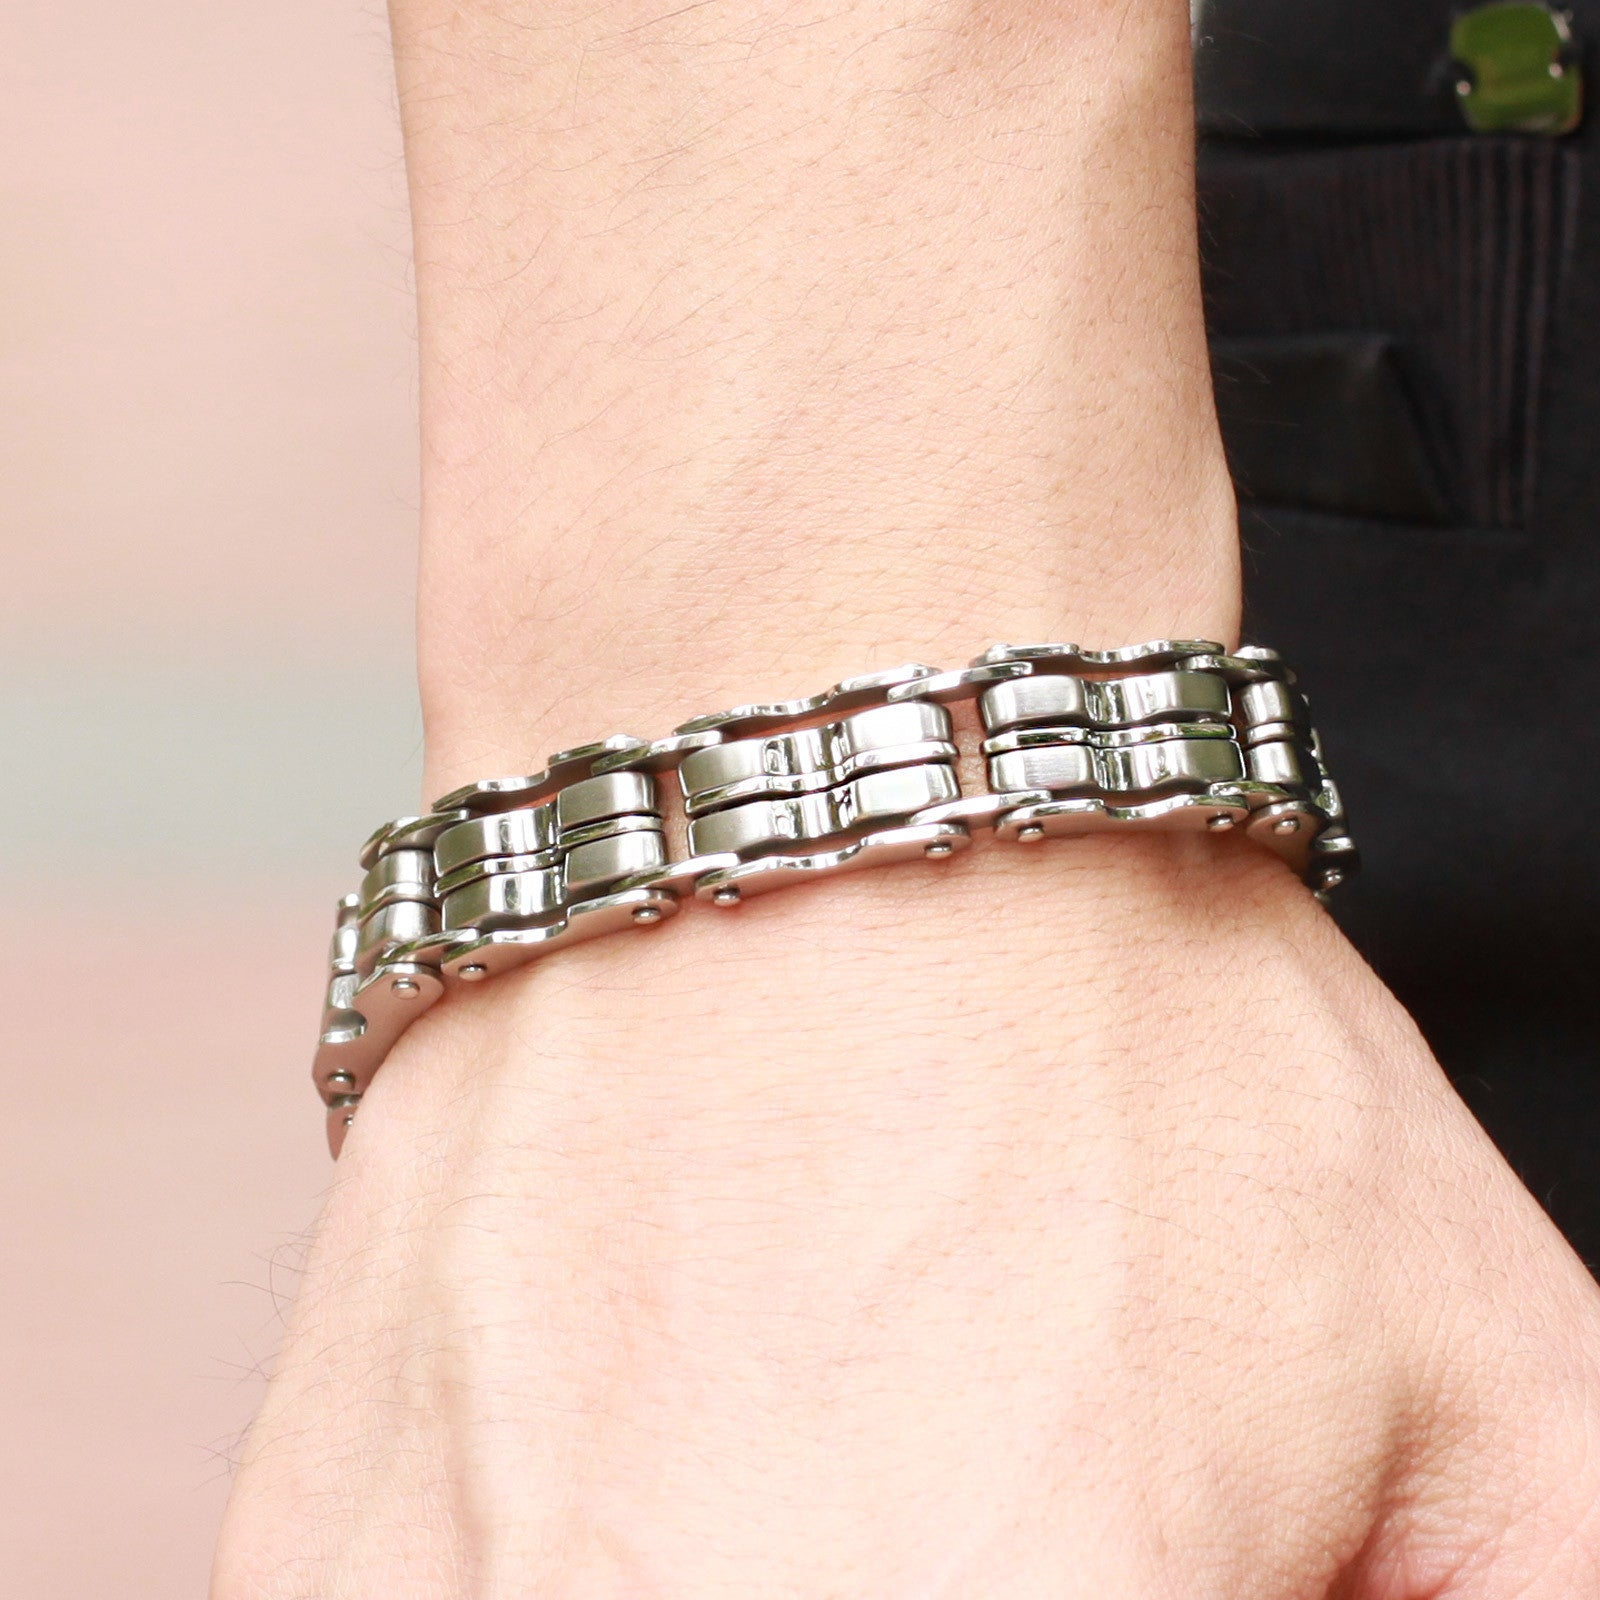 316l Stainless Steel Bracelet Jewelry Stainless Steel